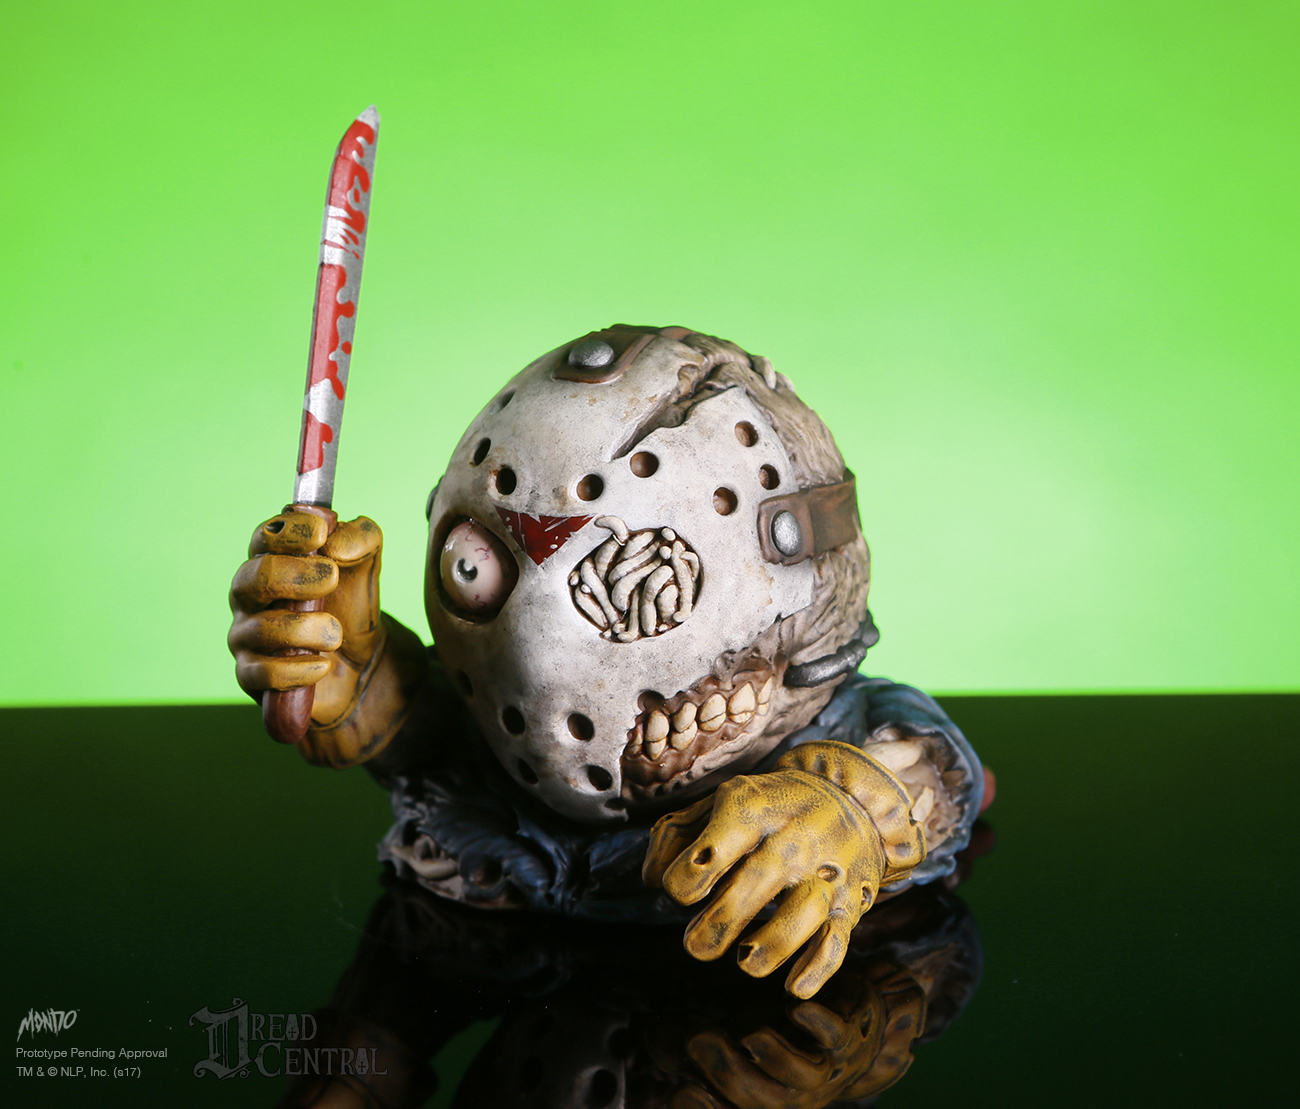 mondo - vinyl figure - mondoid - friday the 13th - jason voorhees